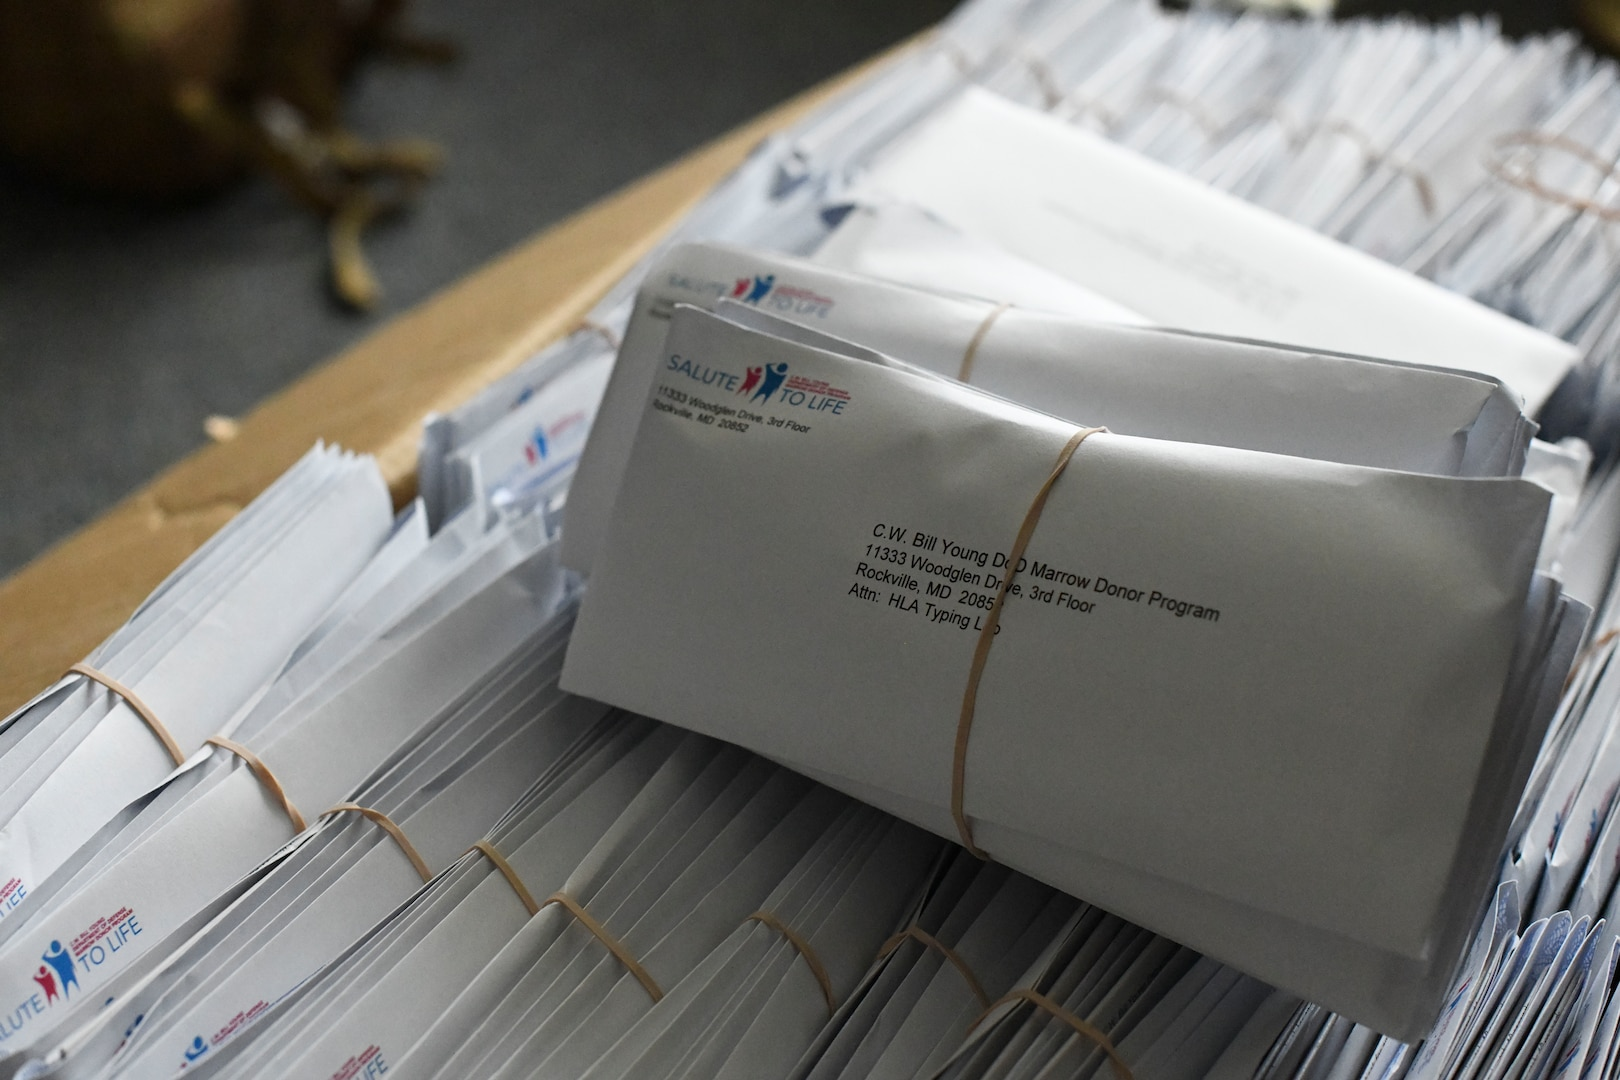 Envelopes are piled together in a box.